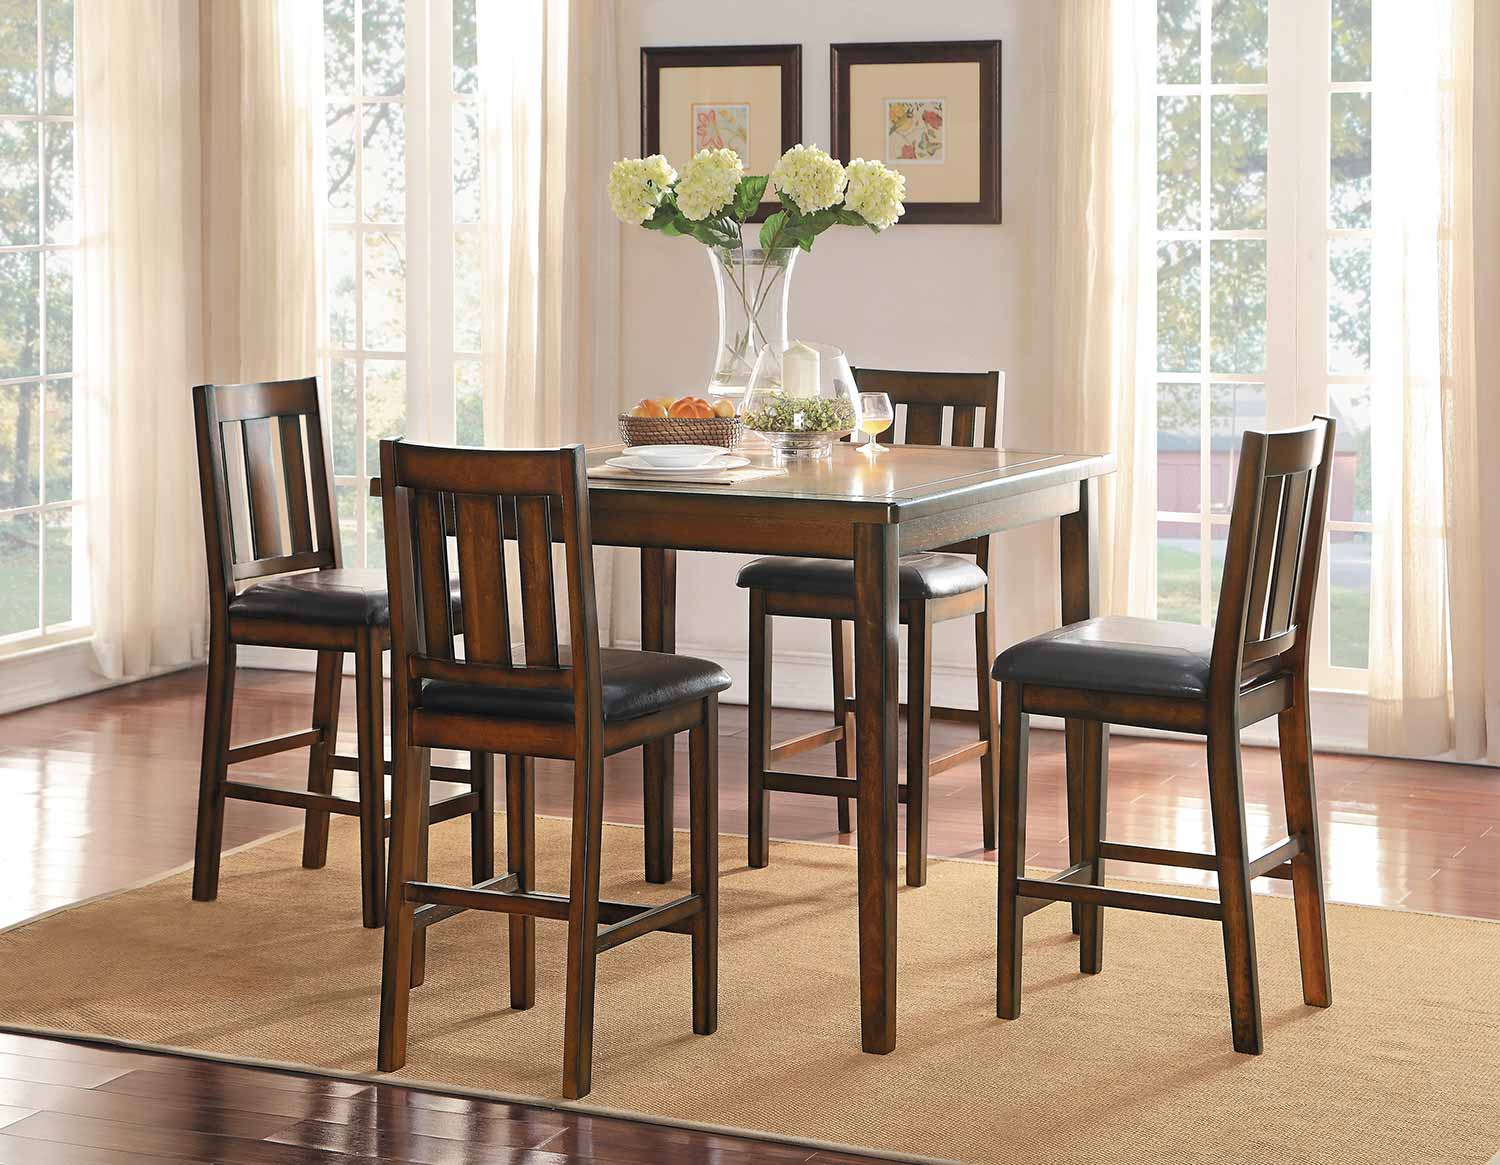 Homelegance Delmar 5  Piece Pack Counter Height Dining Set   Burnish Finish